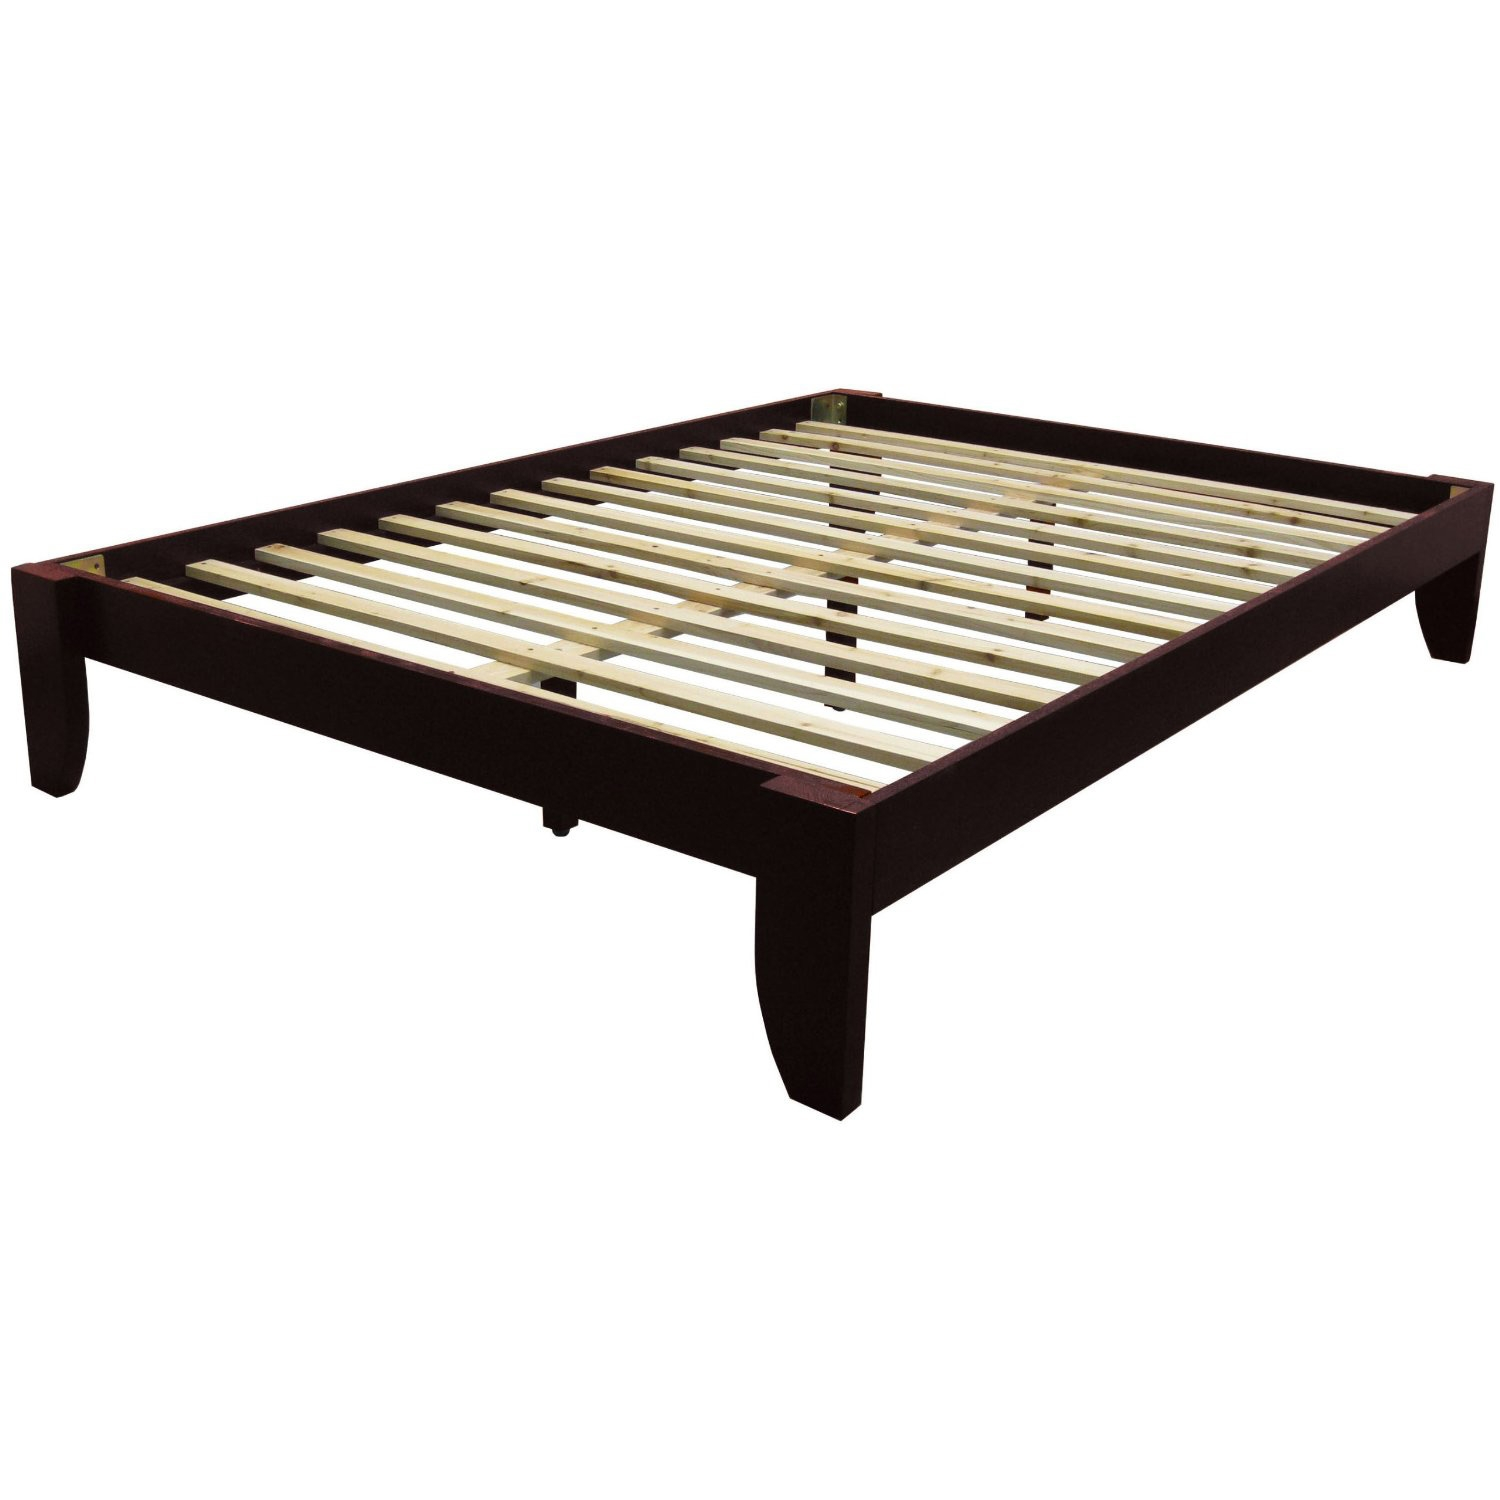 queen size platform bed frame in mahogany wood finish